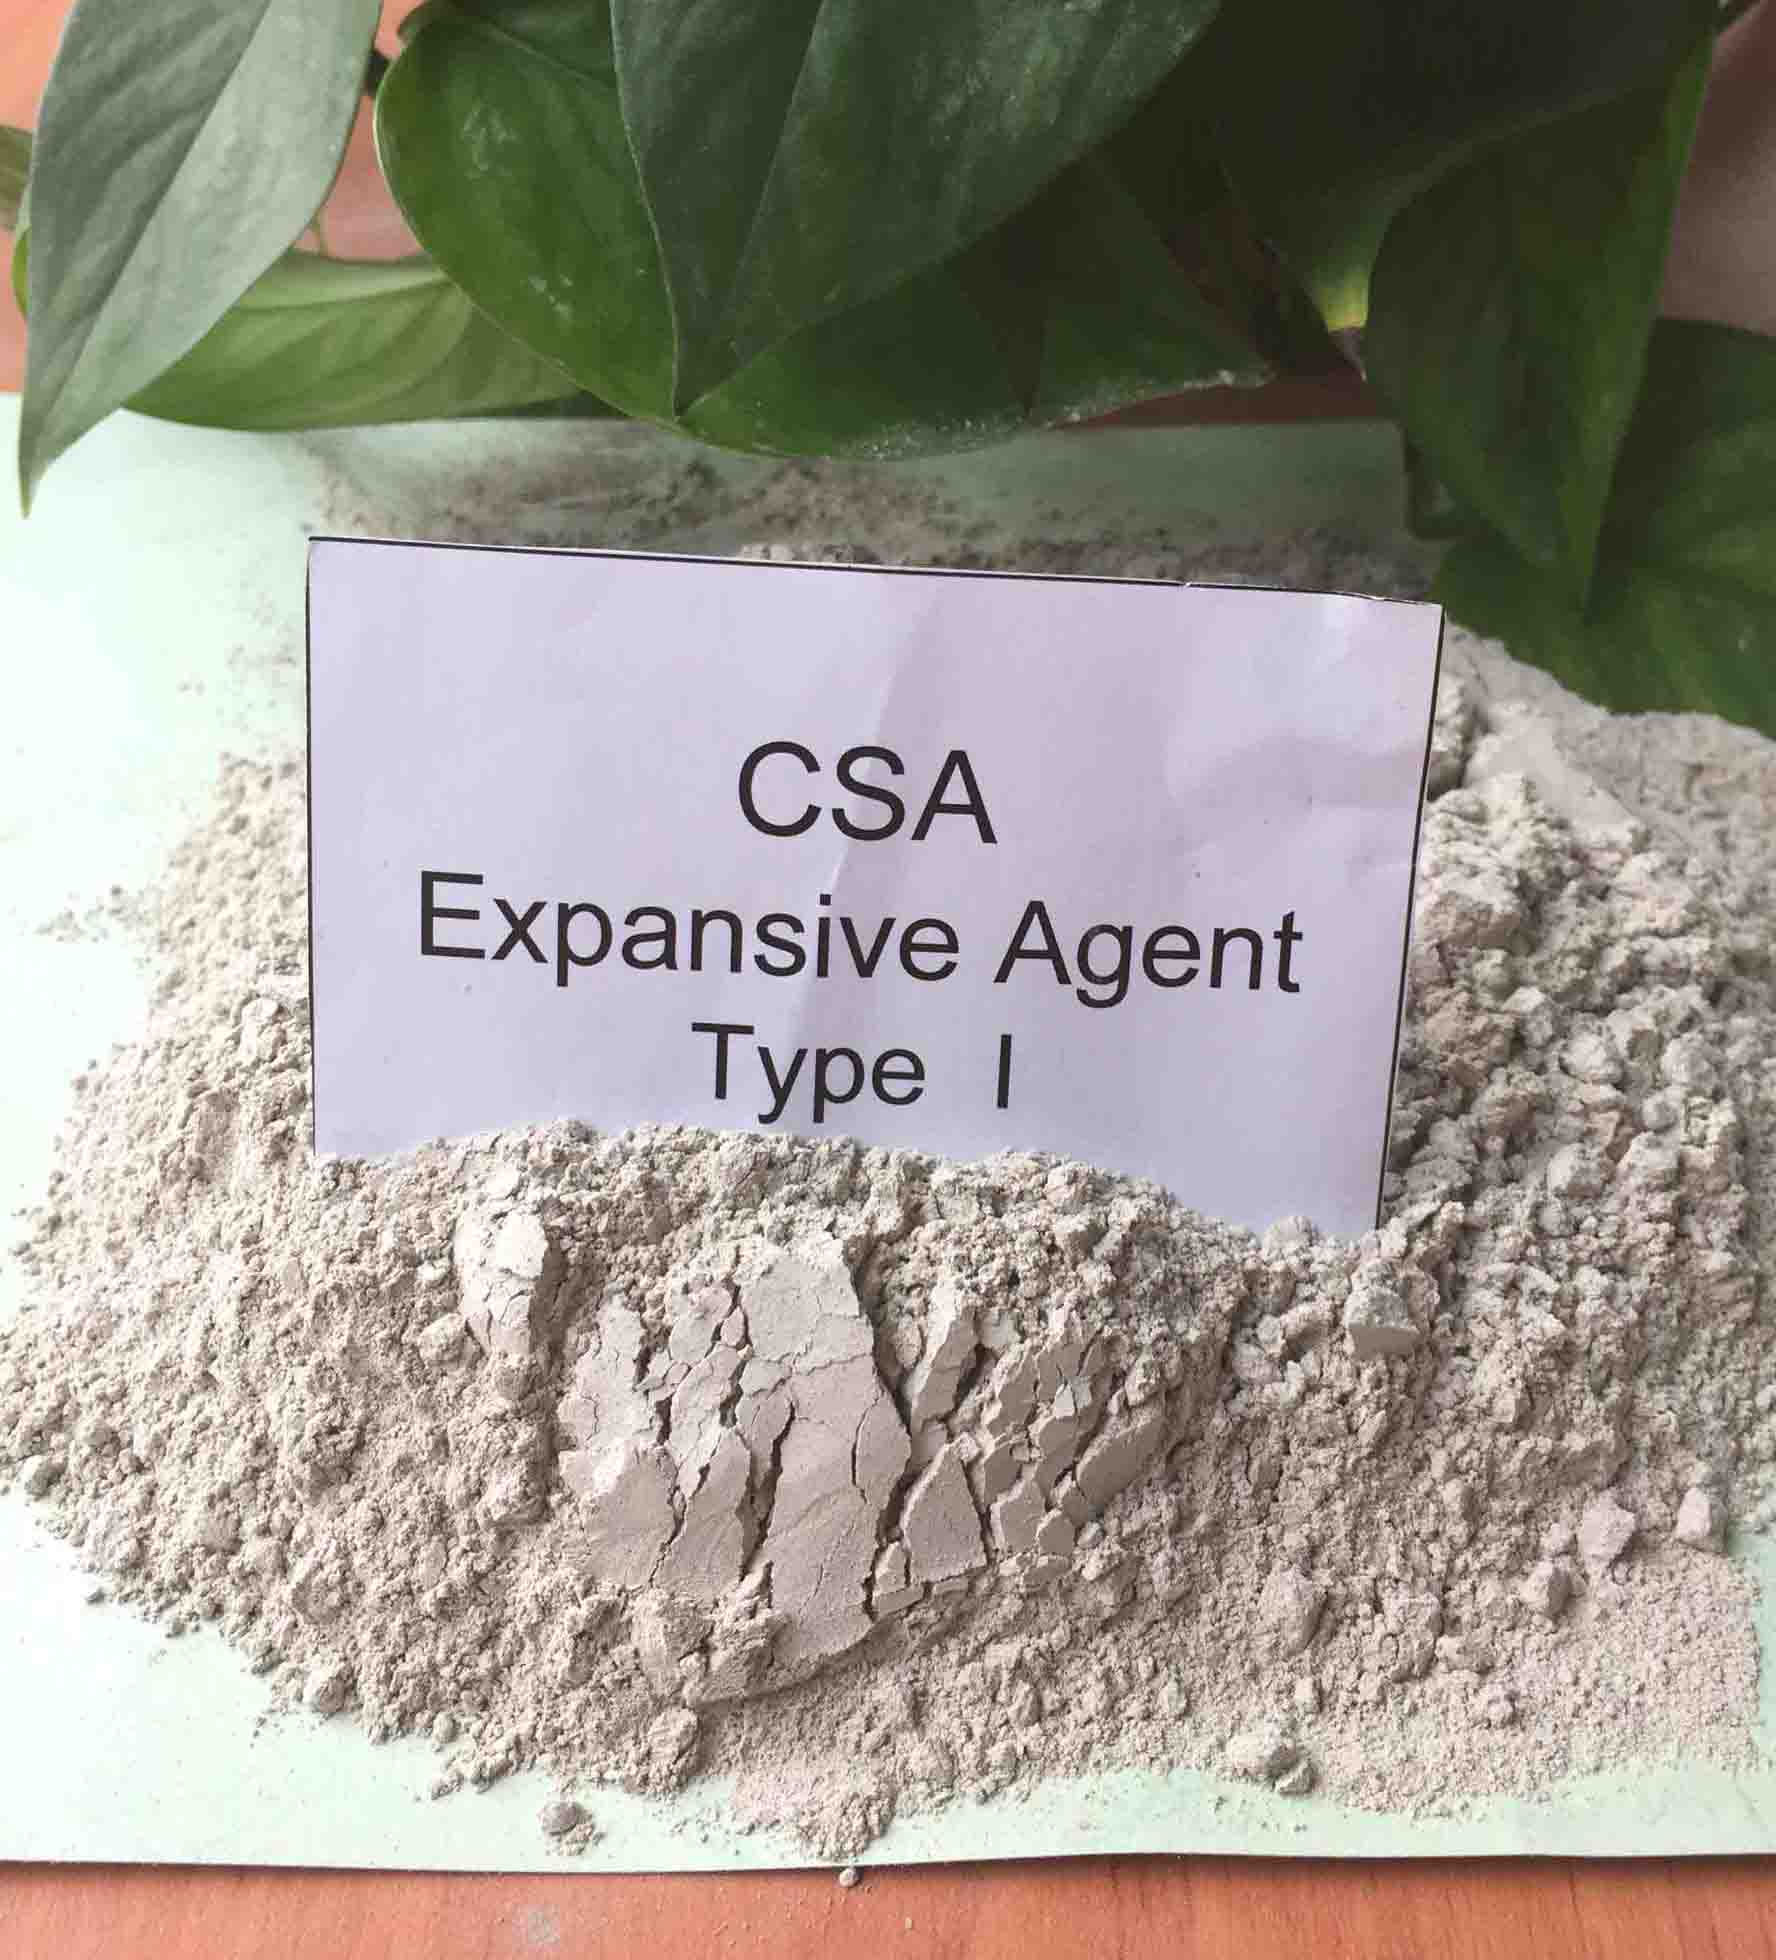 High-efficiency CSA Expansive Agent Type 1